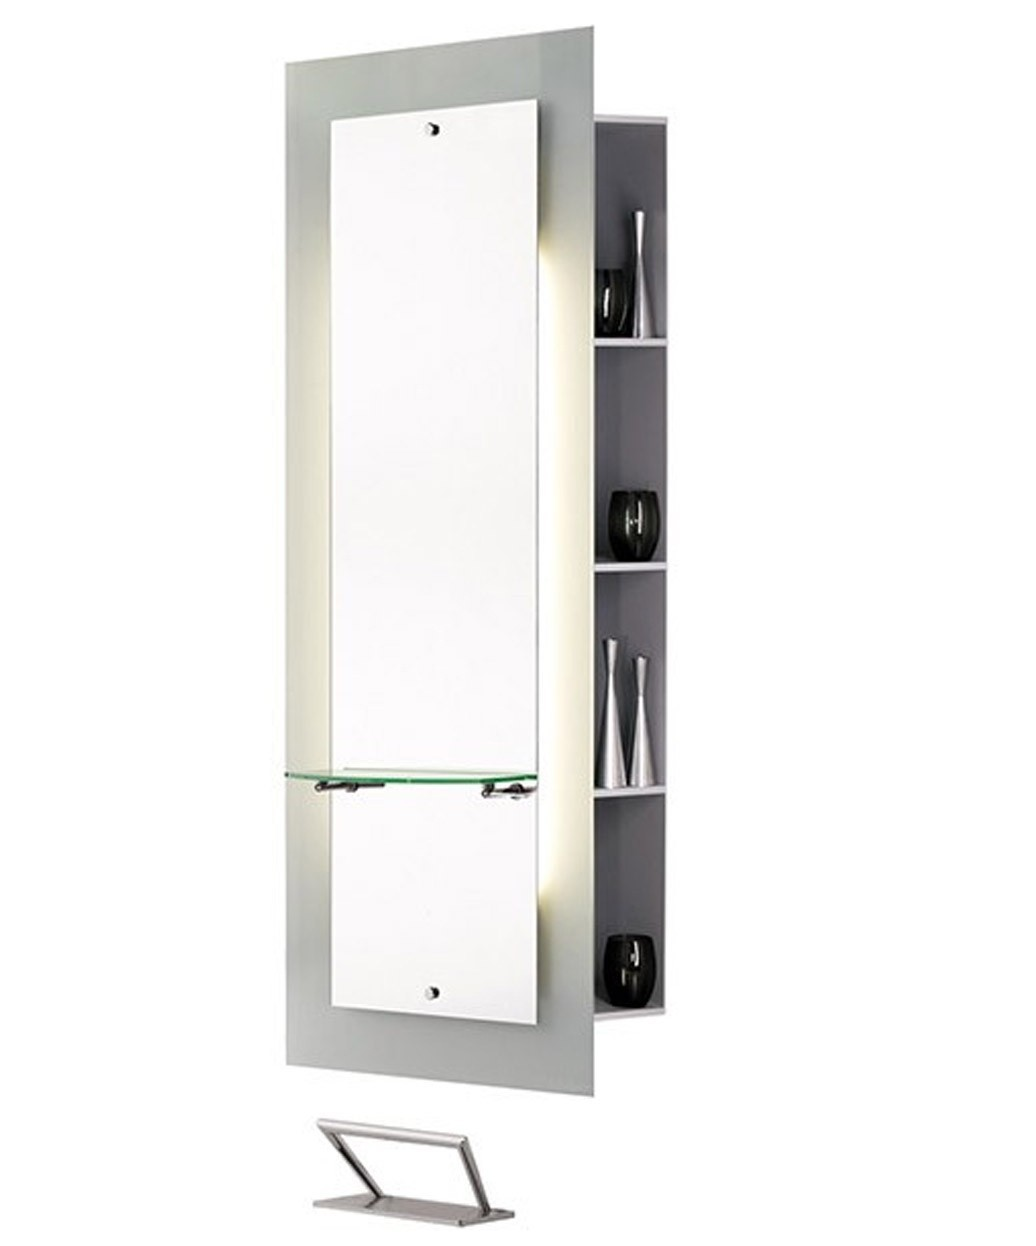 MI050 Lyon Mirror Styling Station with Storage